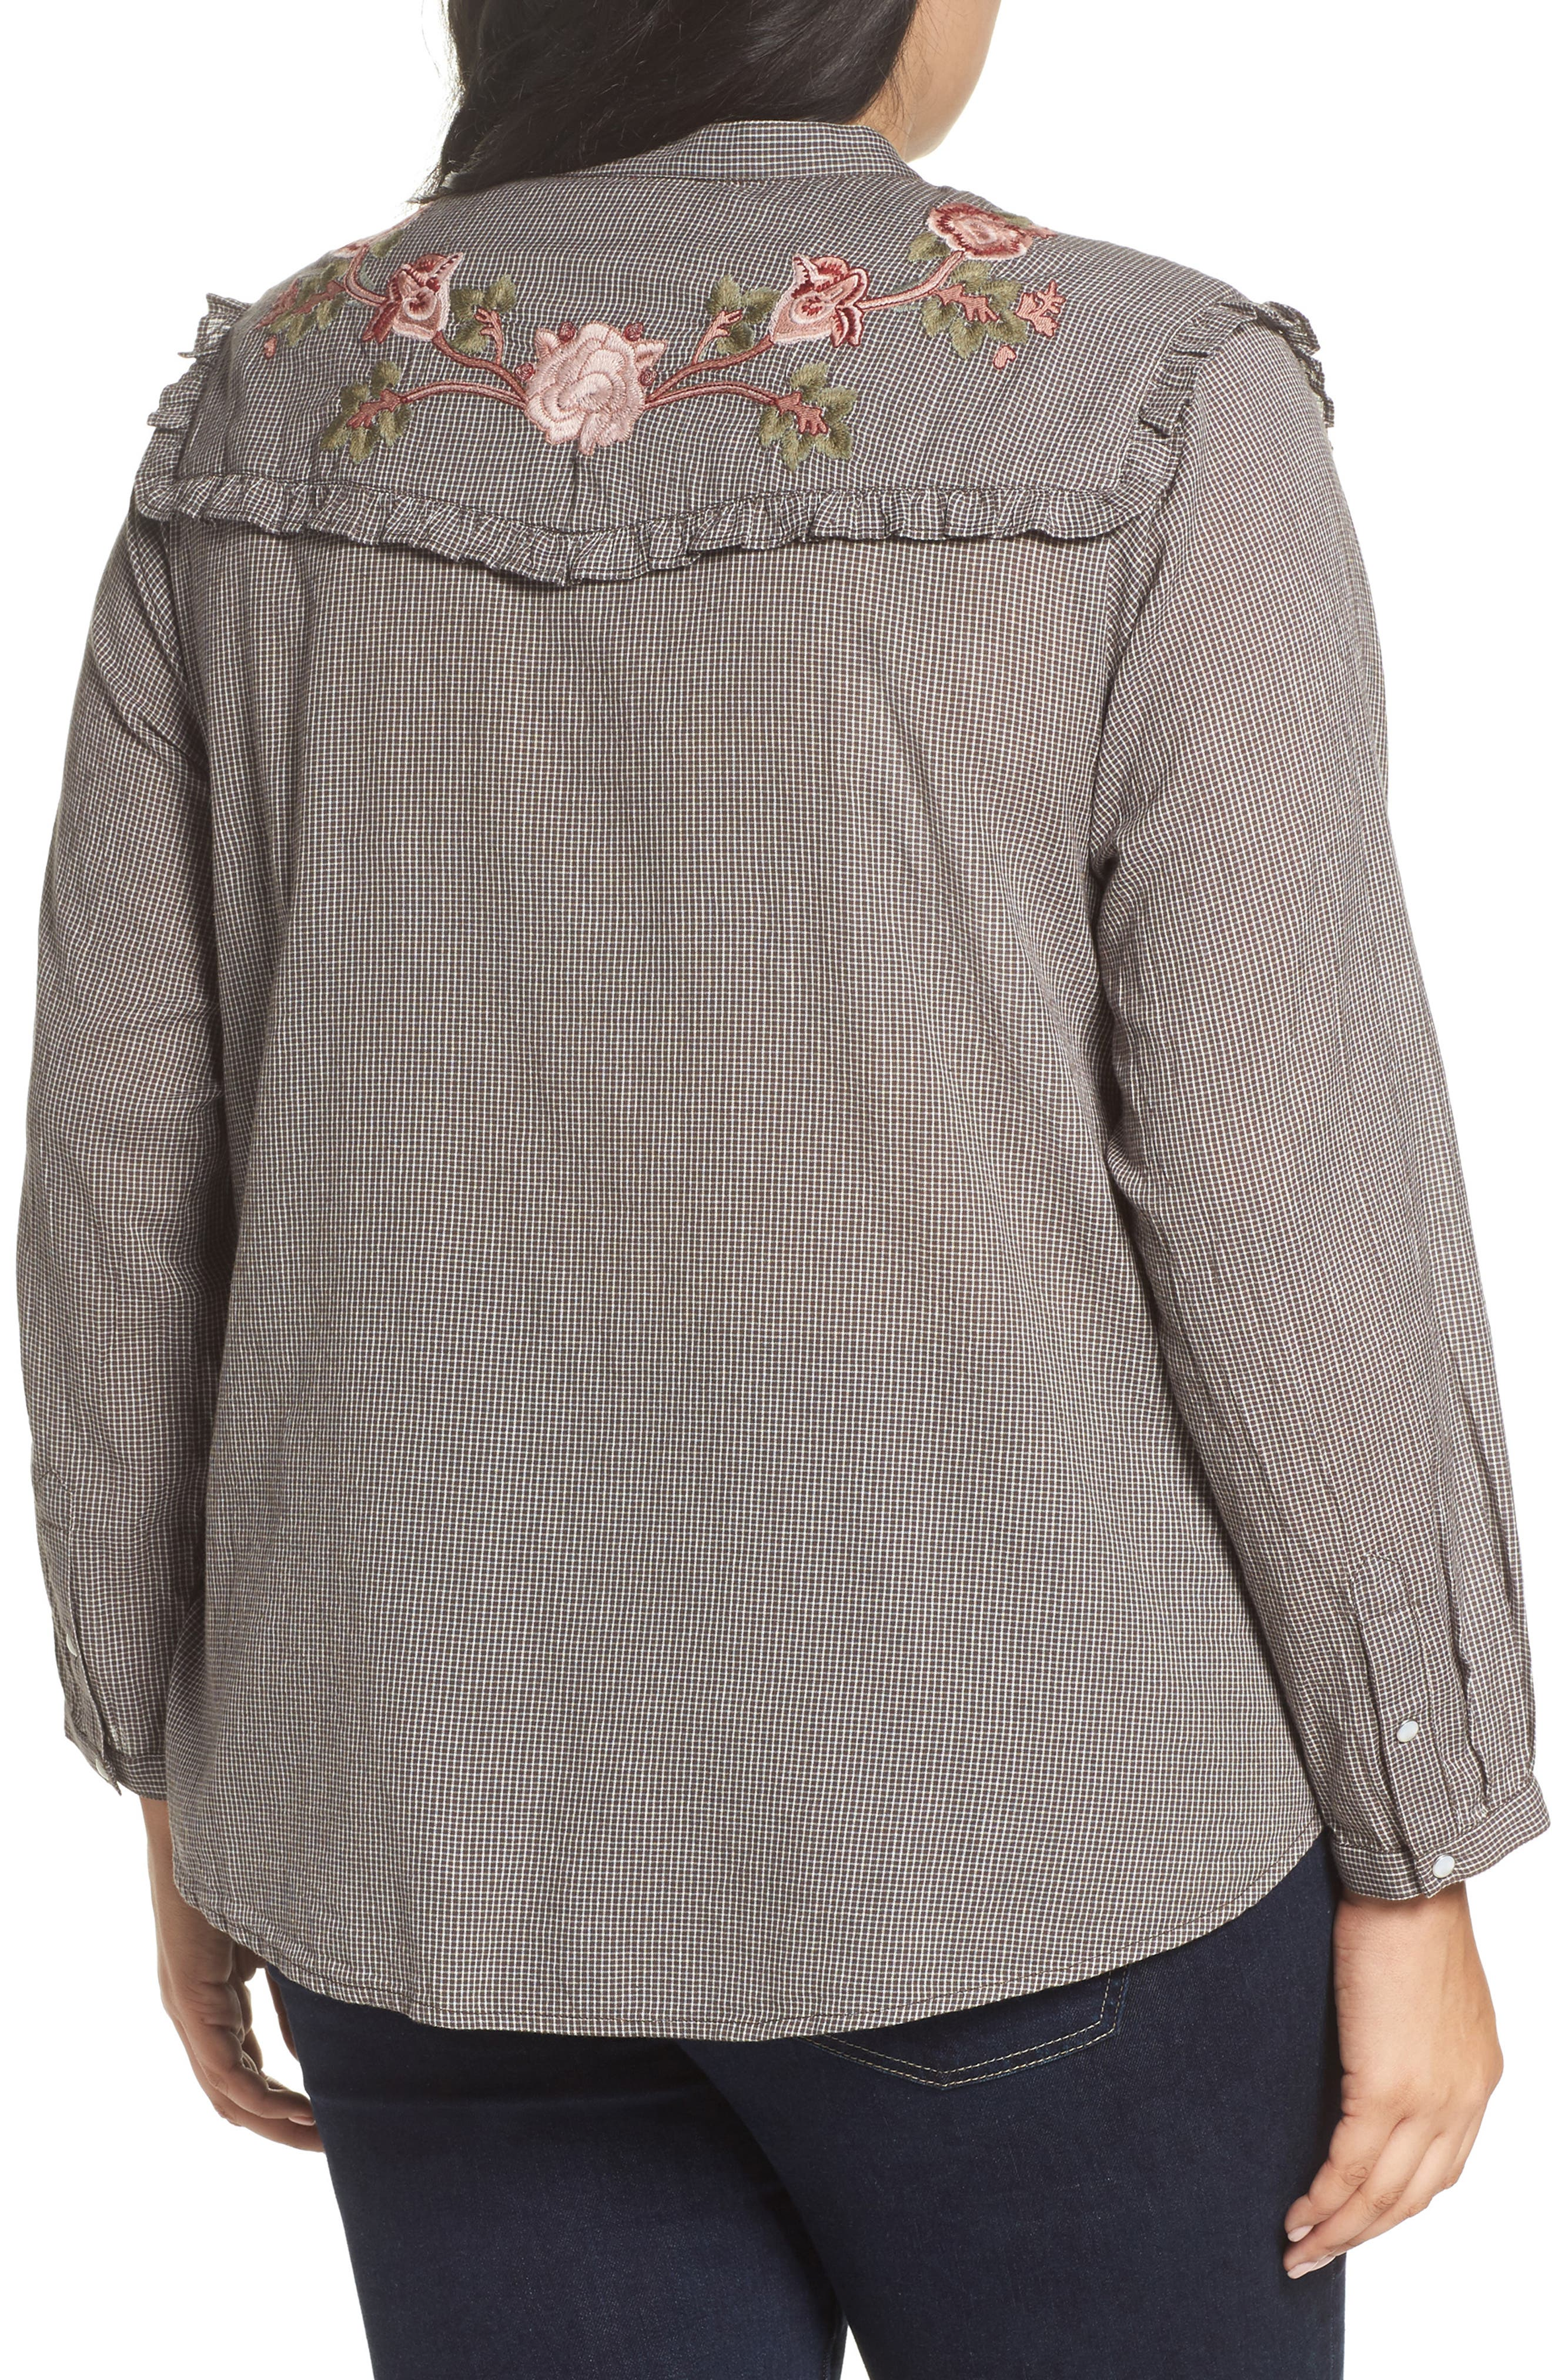 Embroidered Western Shirt,                             Alternate thumbnail 2, color,                             030